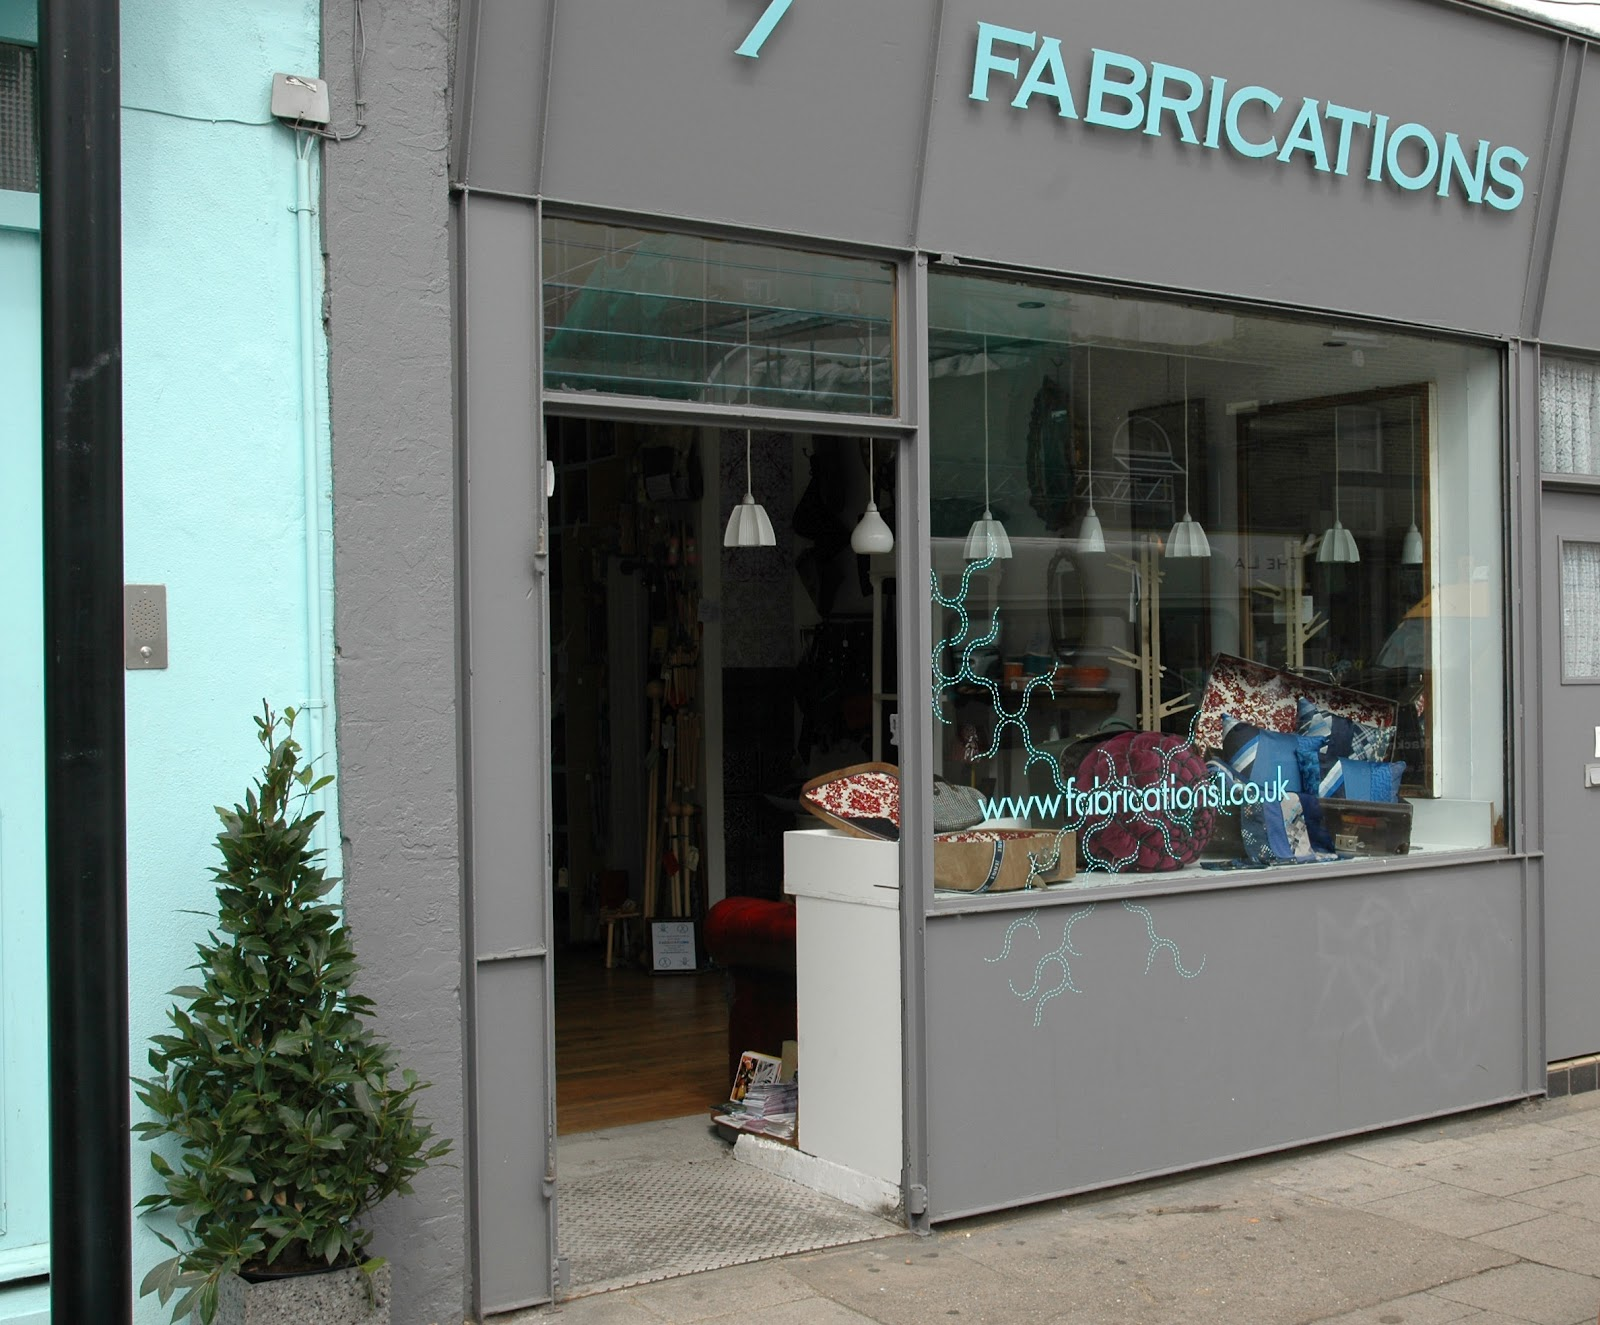 Fabrications + Brother Sewing Day, Thursday 29th March, 12 ...